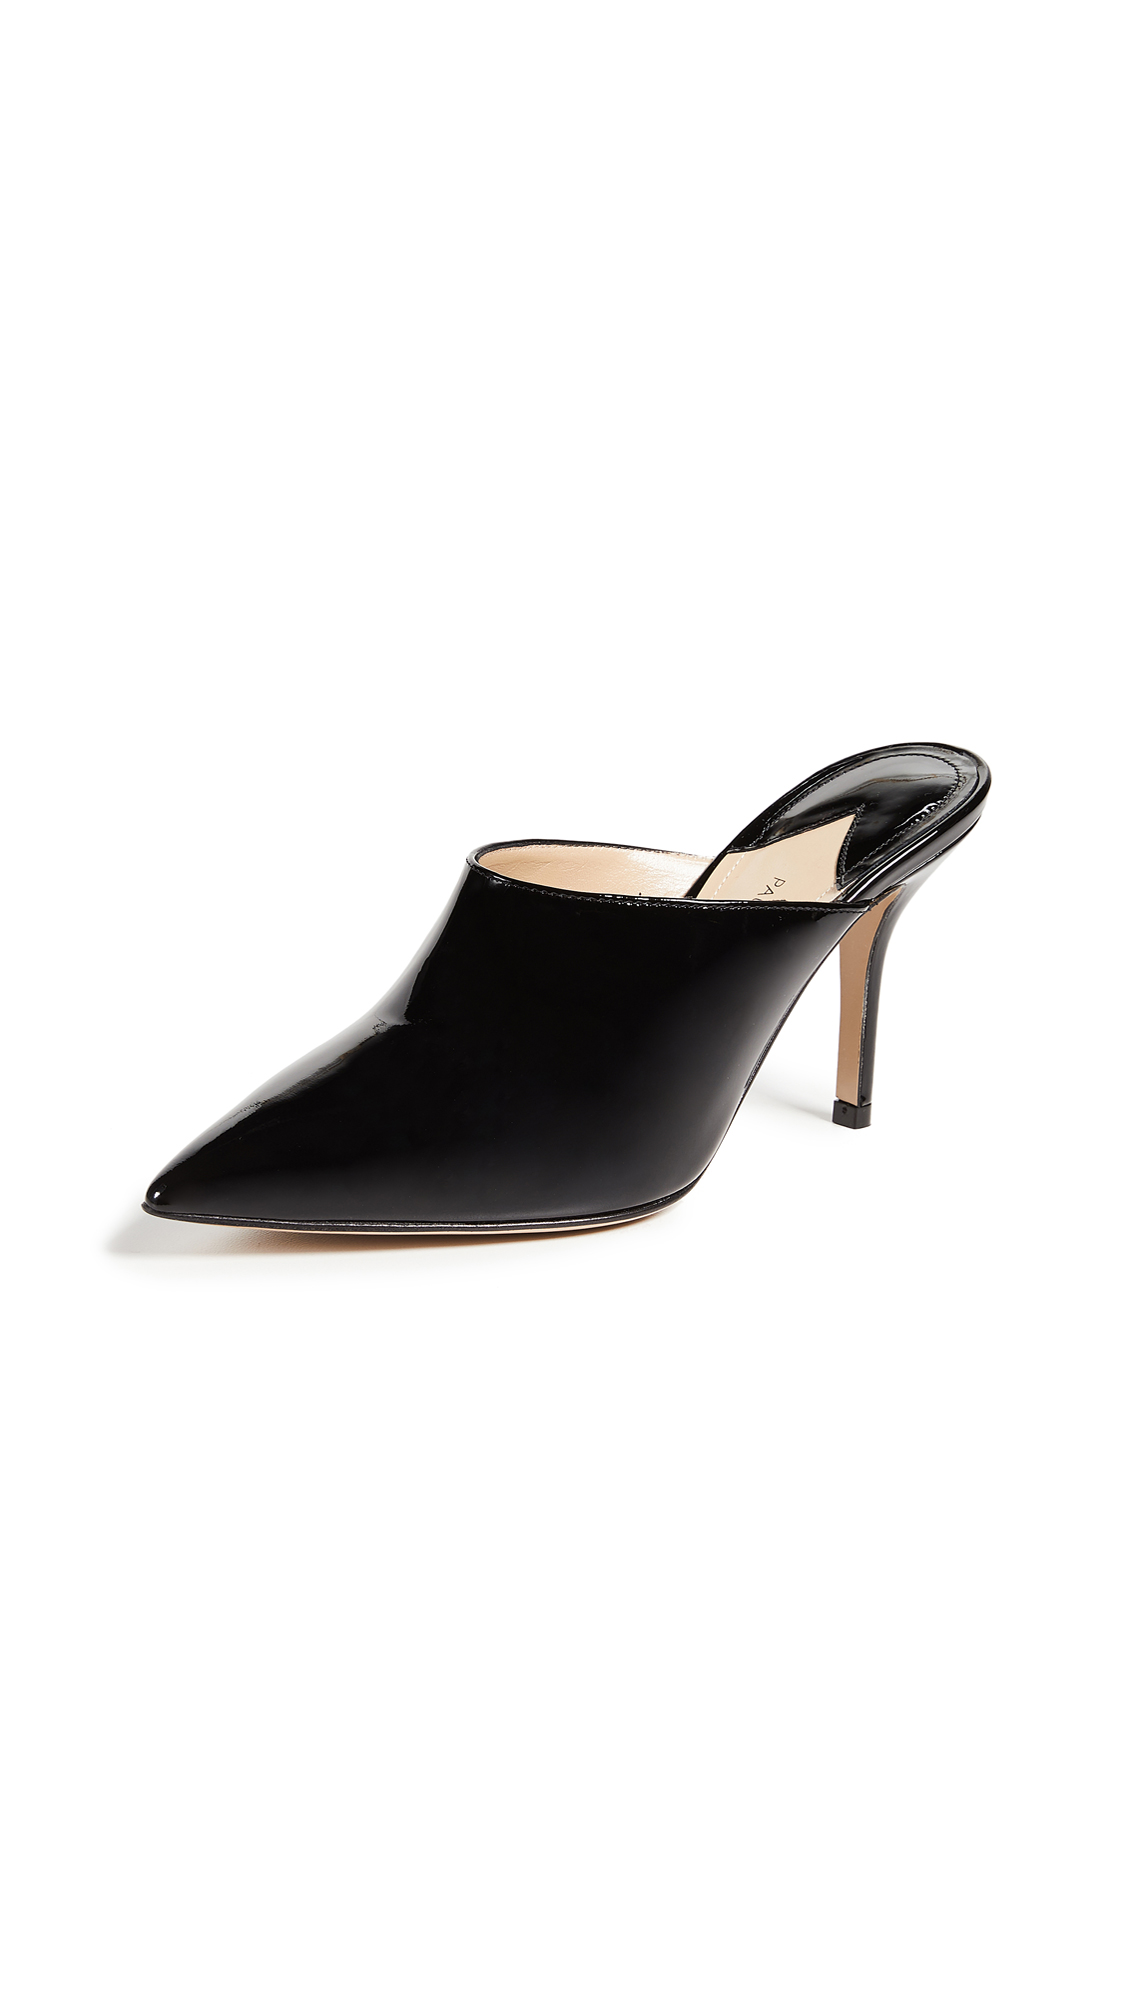 Paul Andrew Certosa Mule Pumps - Black